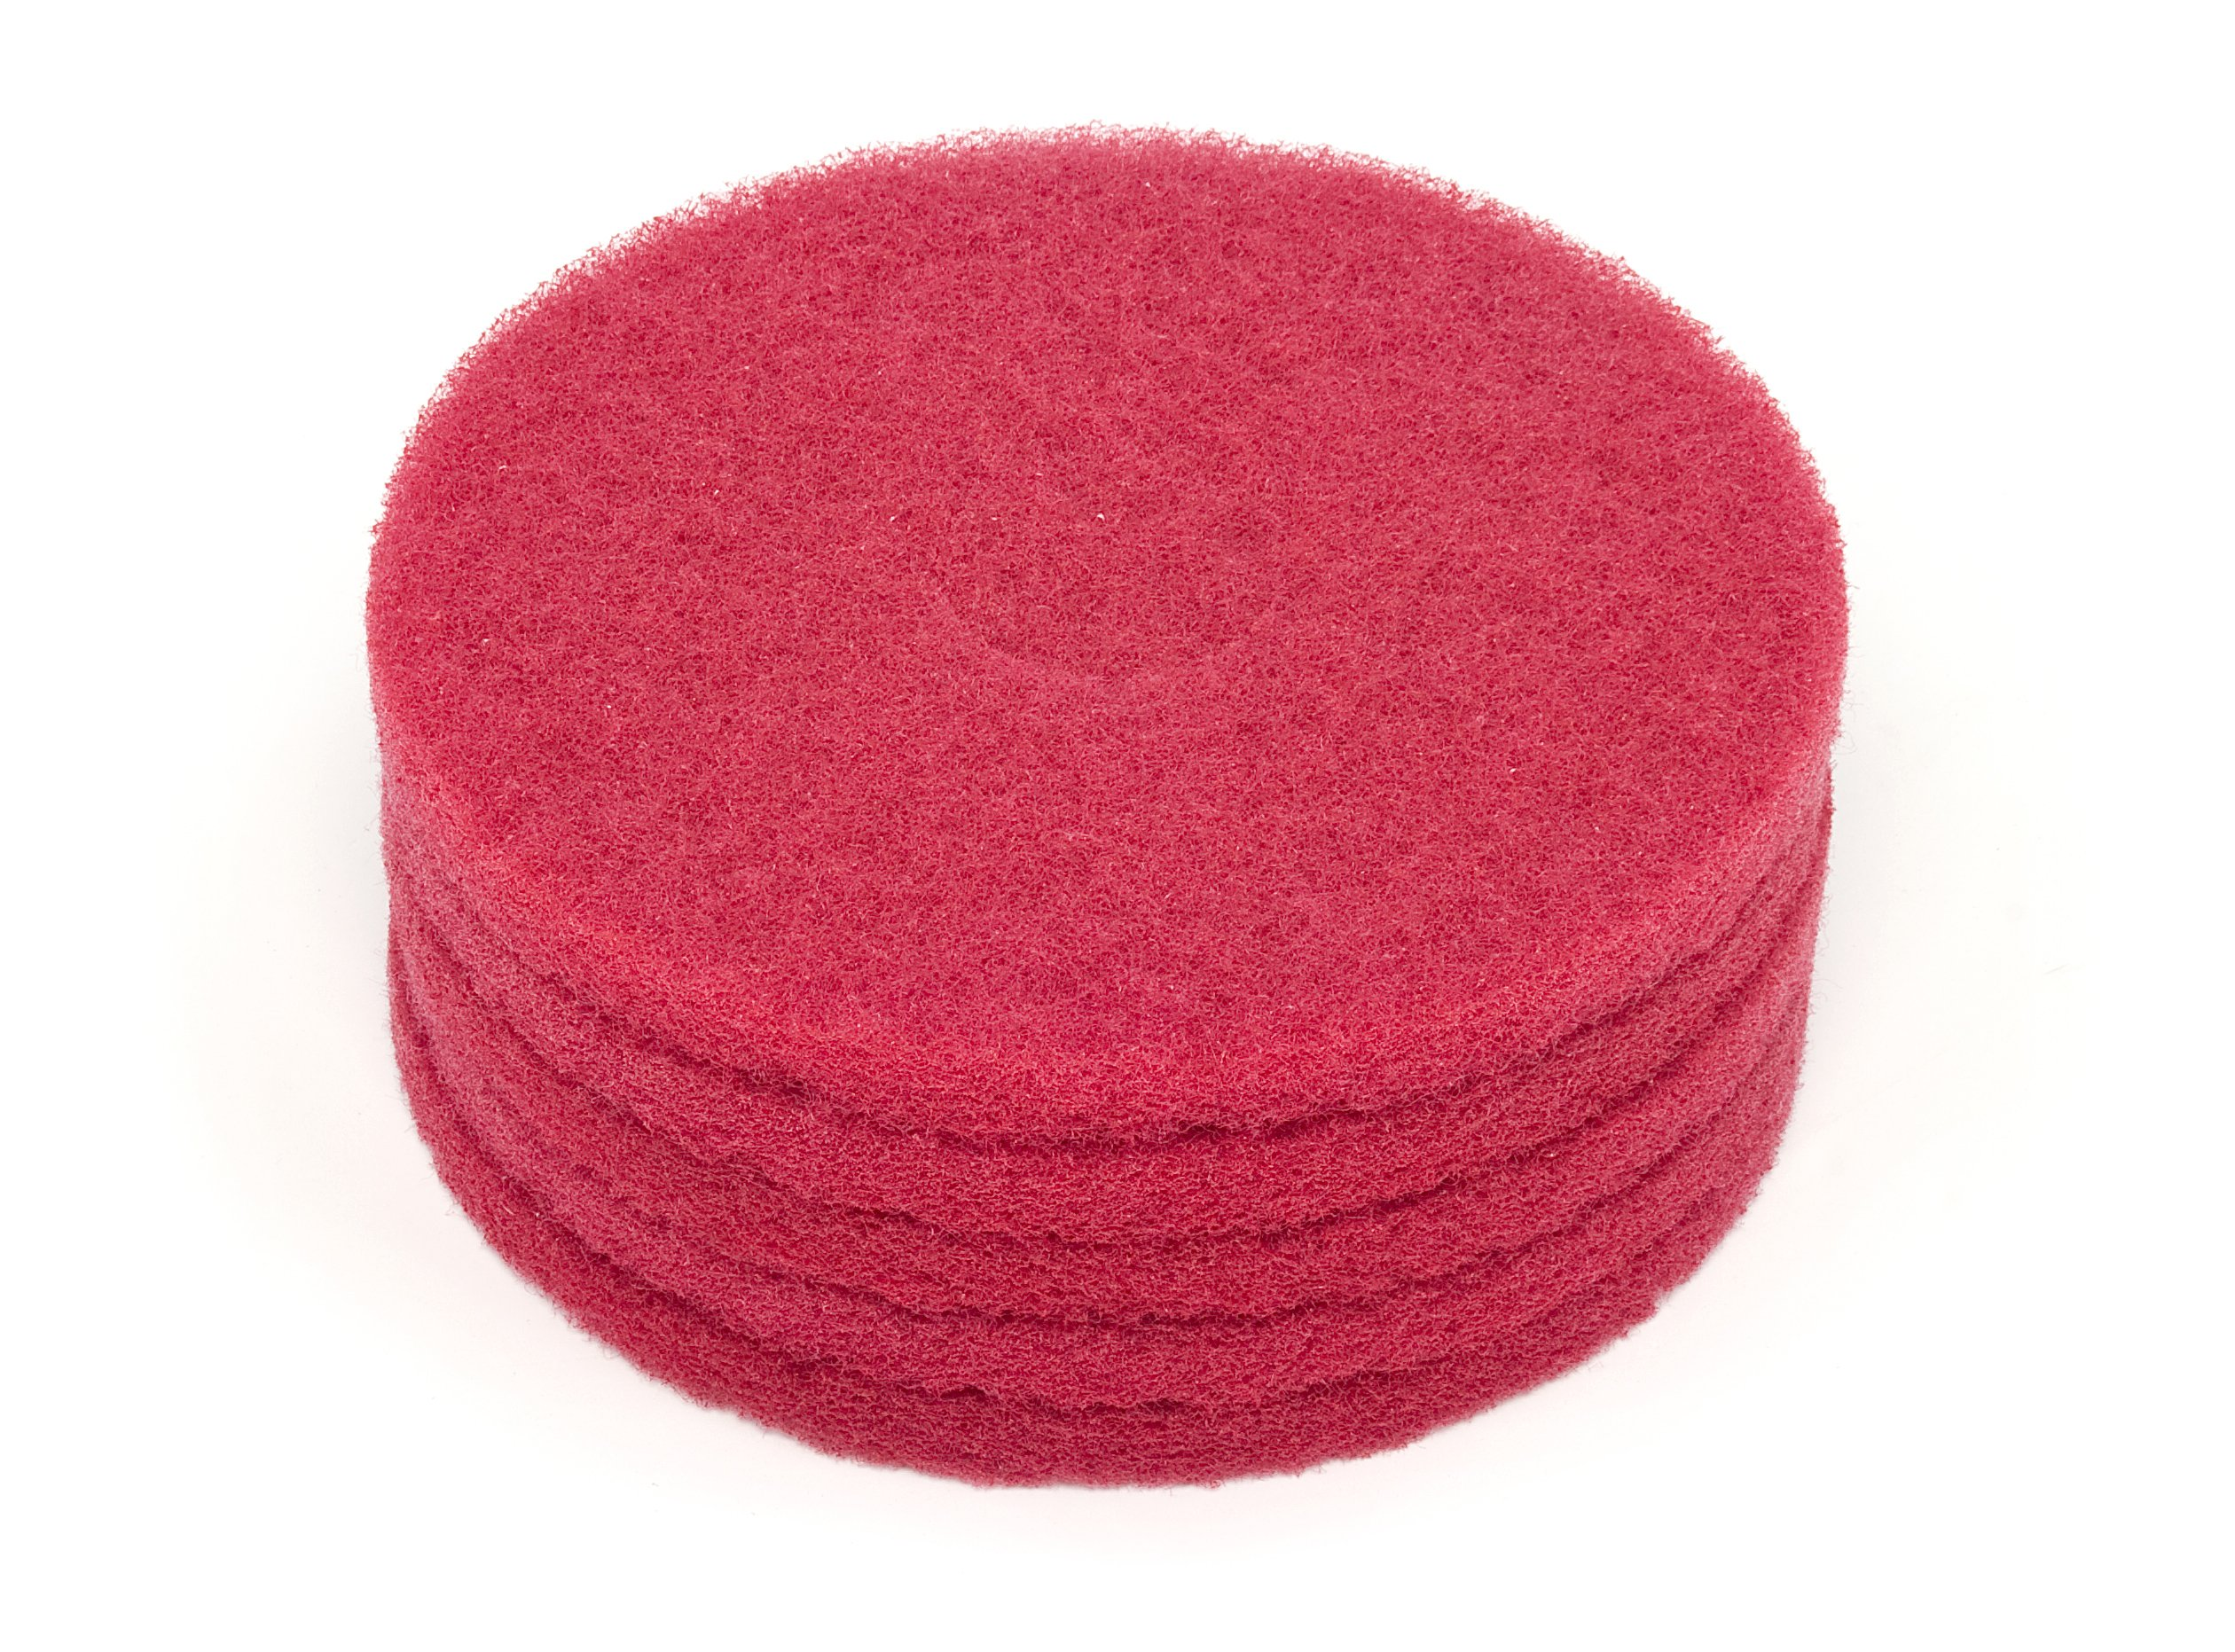 Nilfisk-Advance 976068 Commercial 20 Inch Diameter Red Scrub Pad, Case of 5